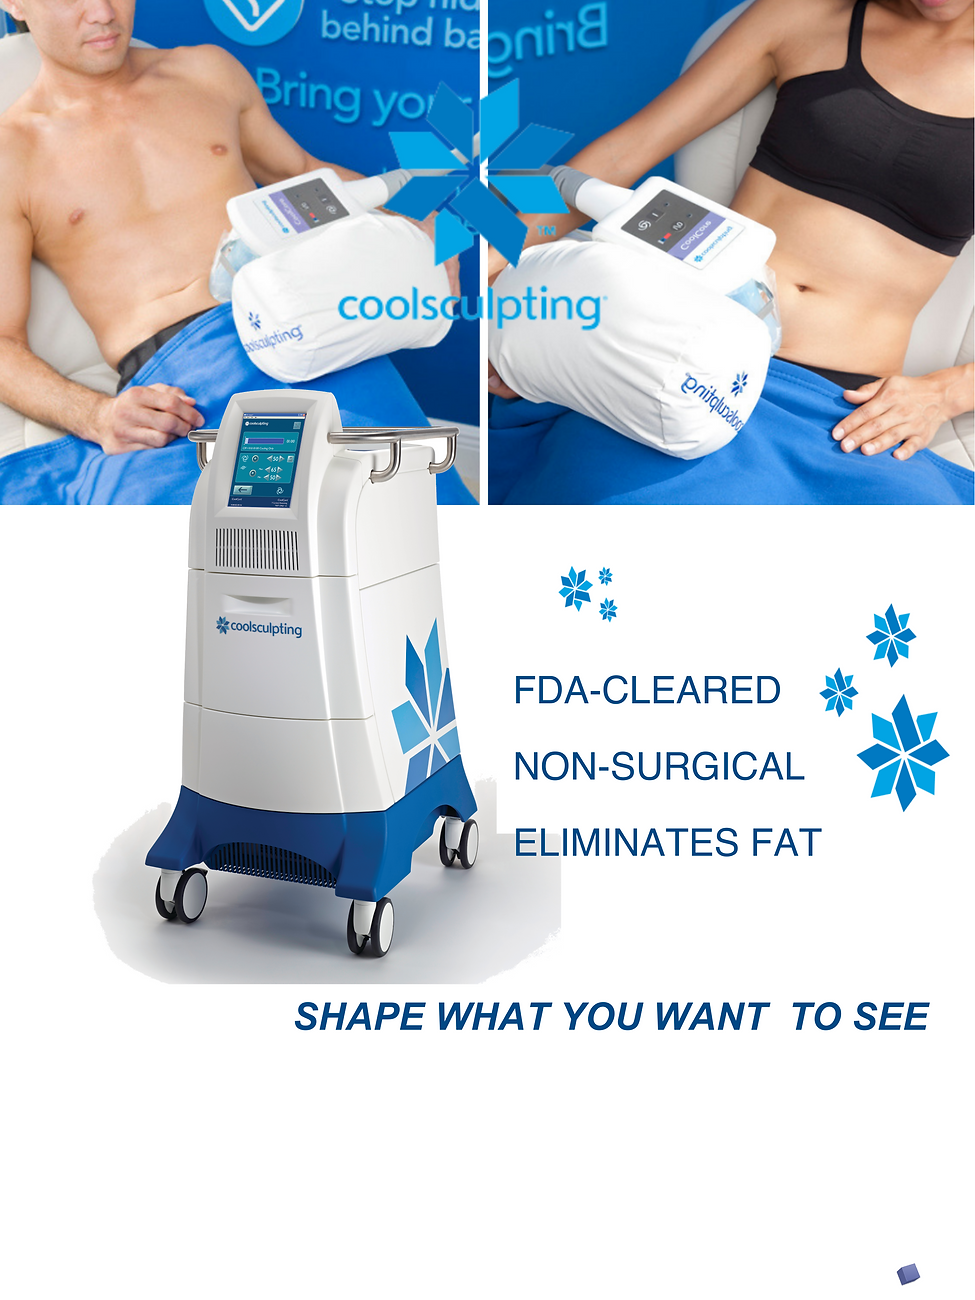 coolsculpting2.png